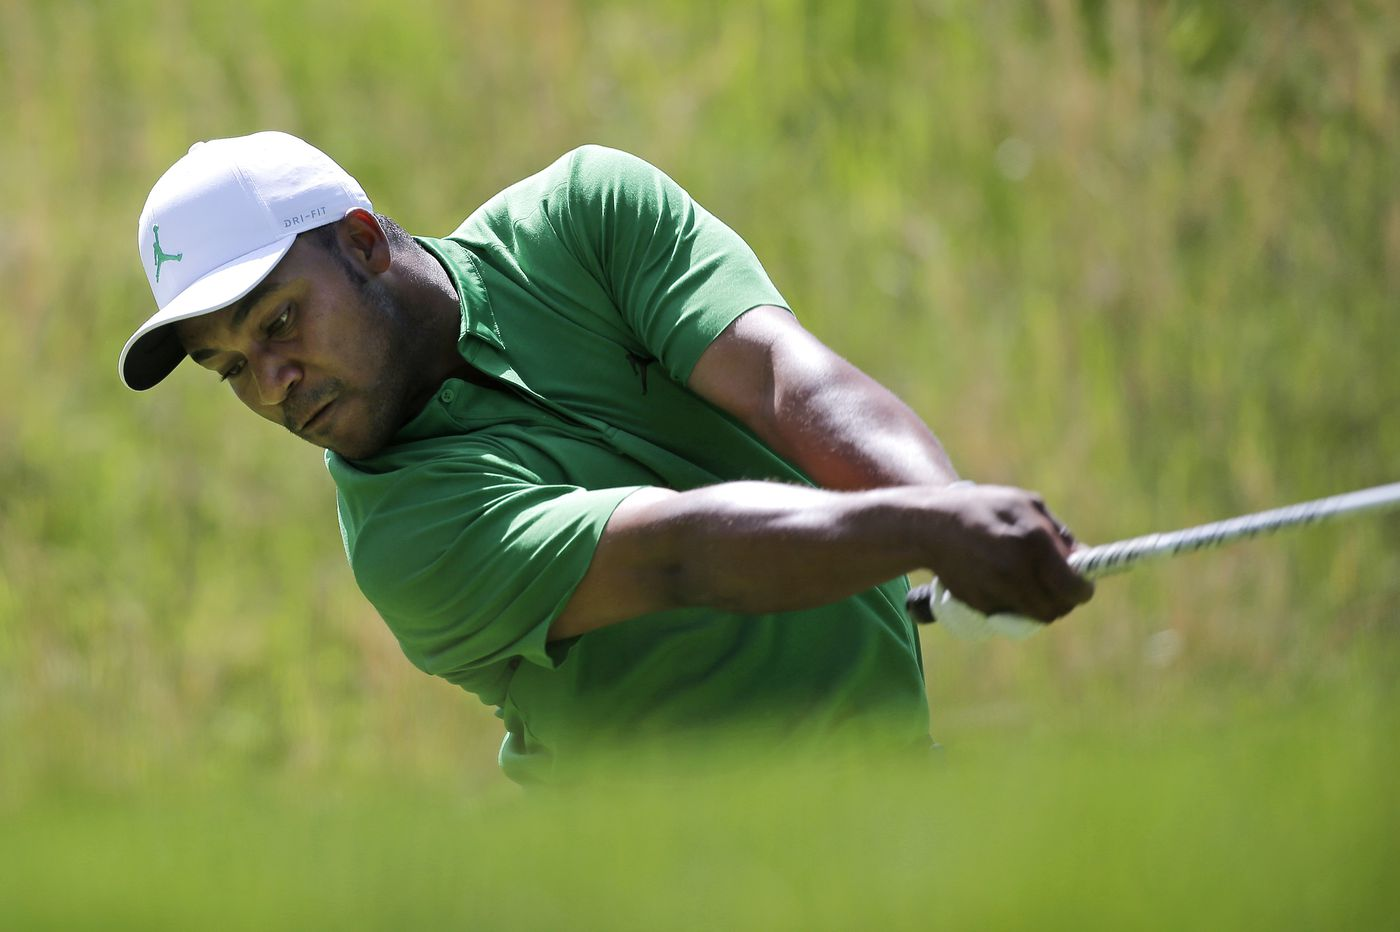 PGA Championship: Harold Varner, one of three African Americans on tour, answers 'Tiger' chants with solid pla